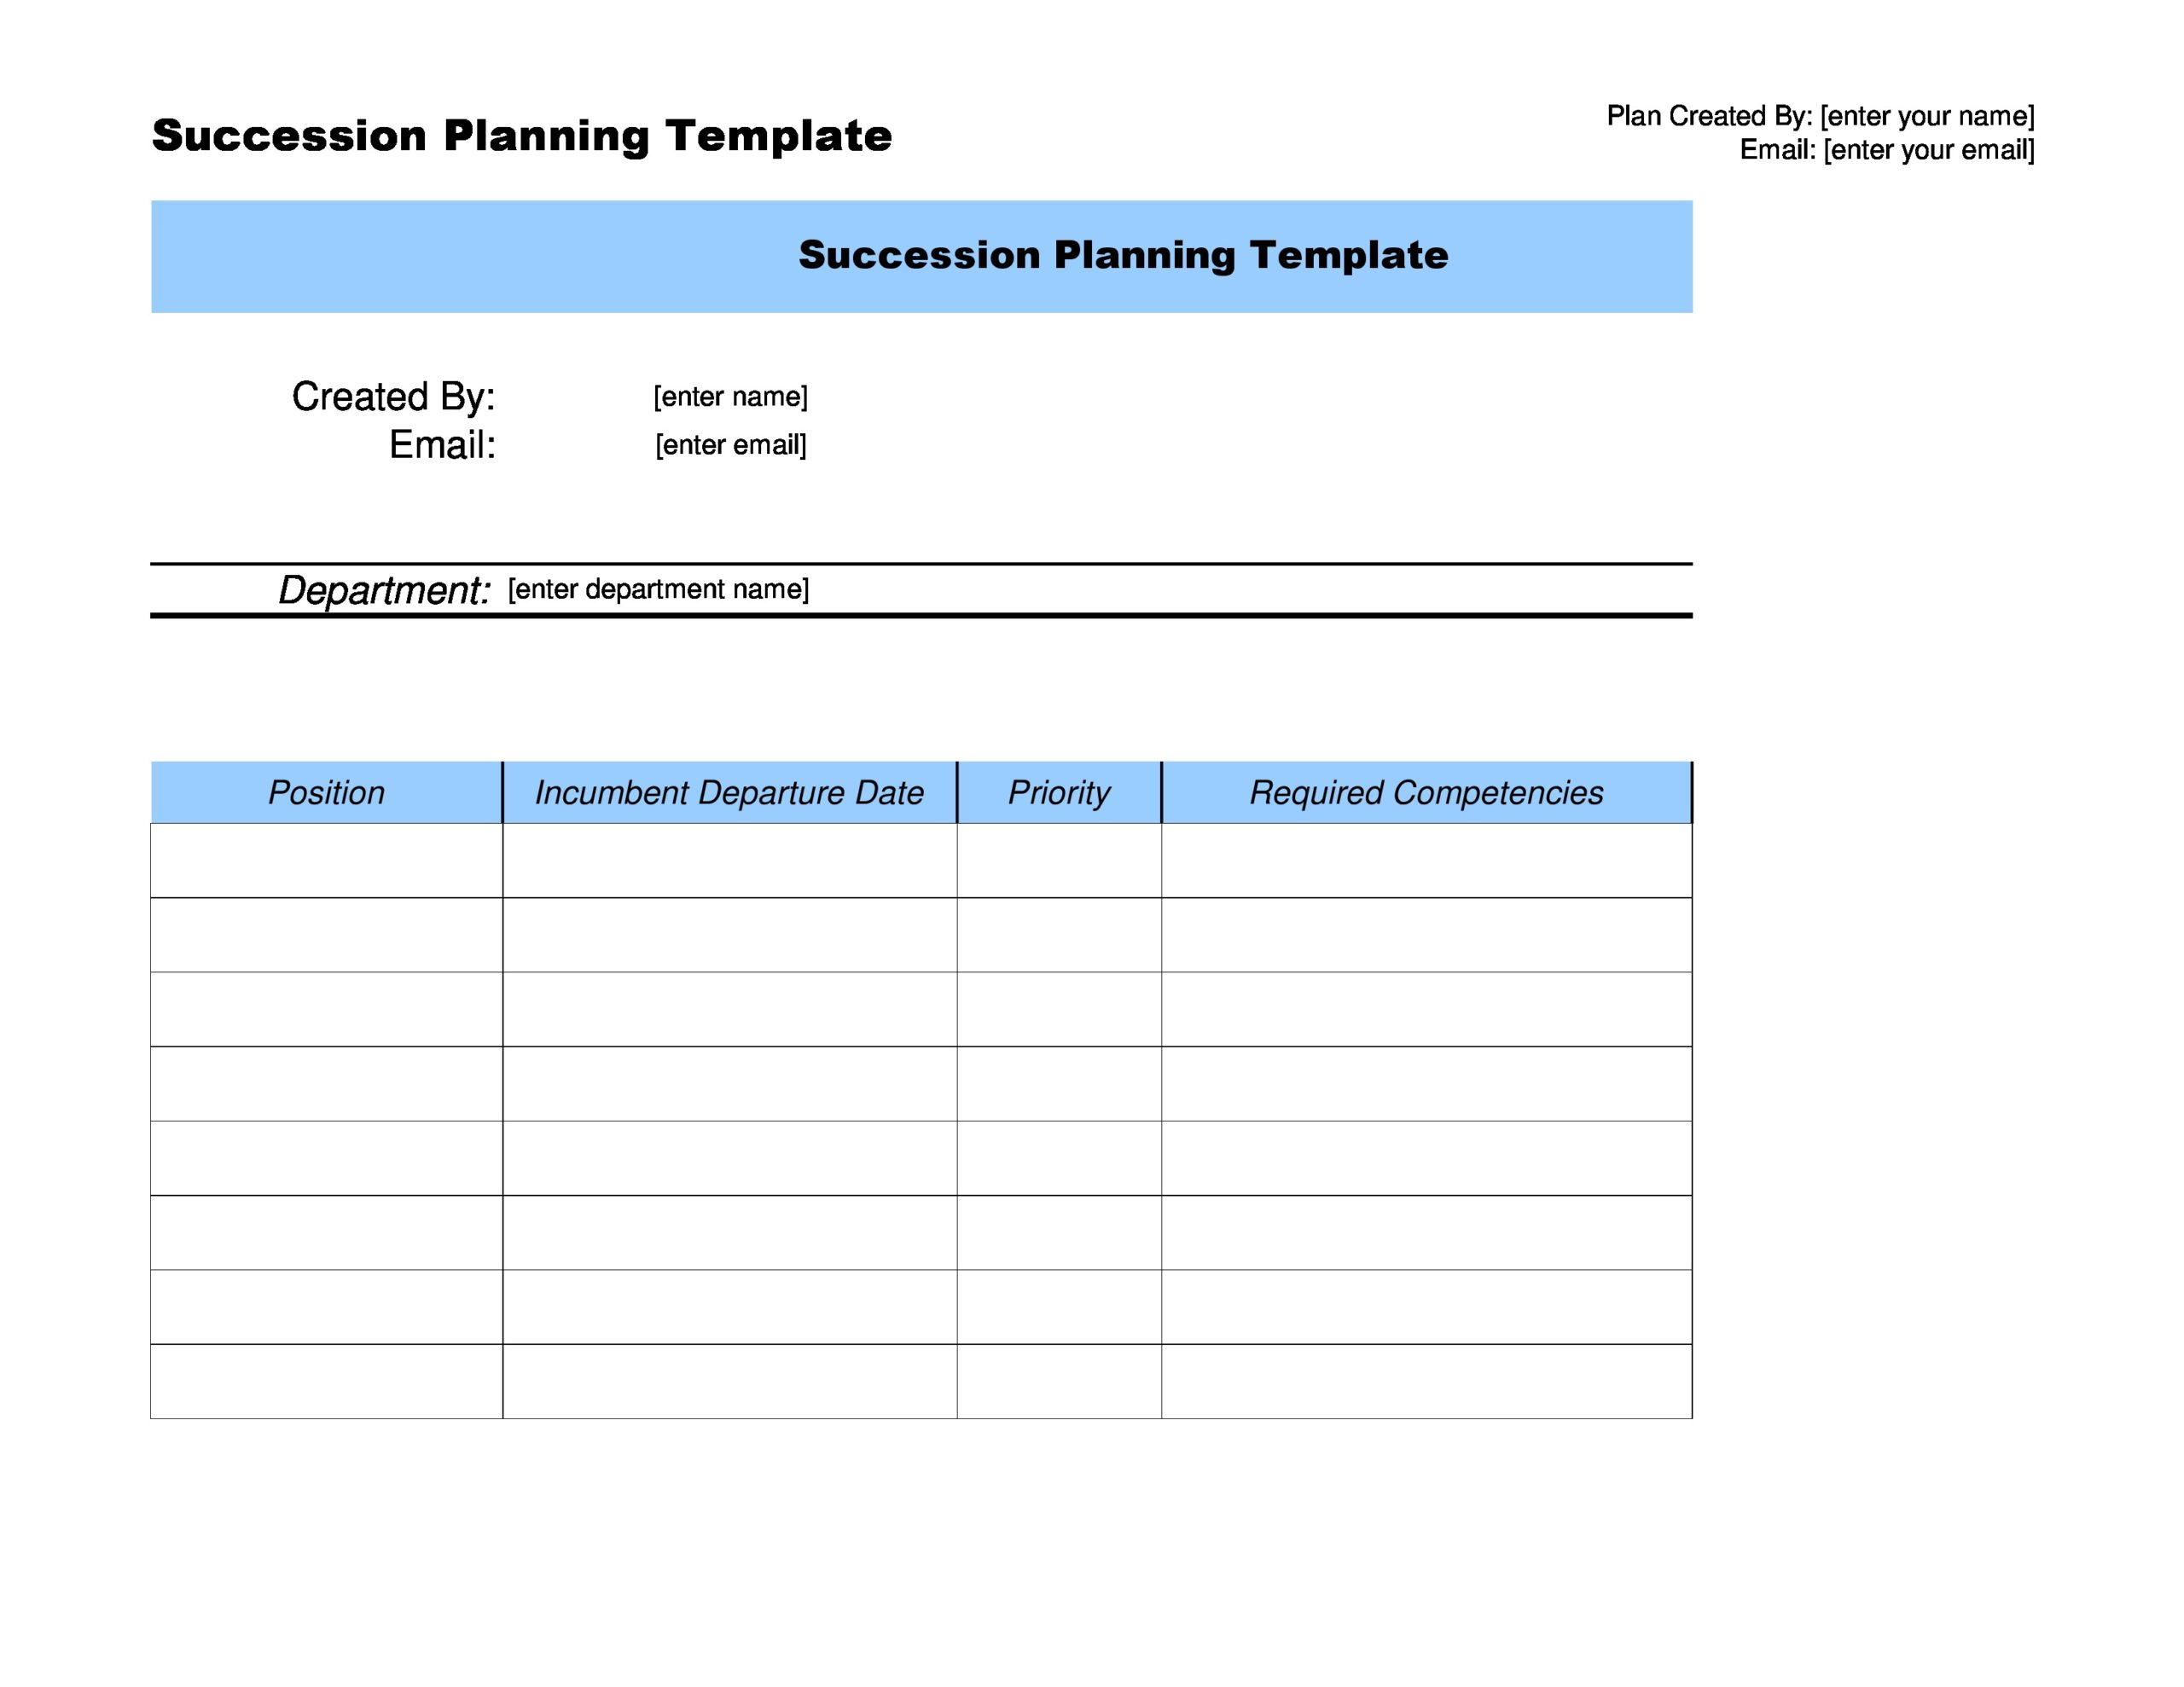 Free succession planning template 14